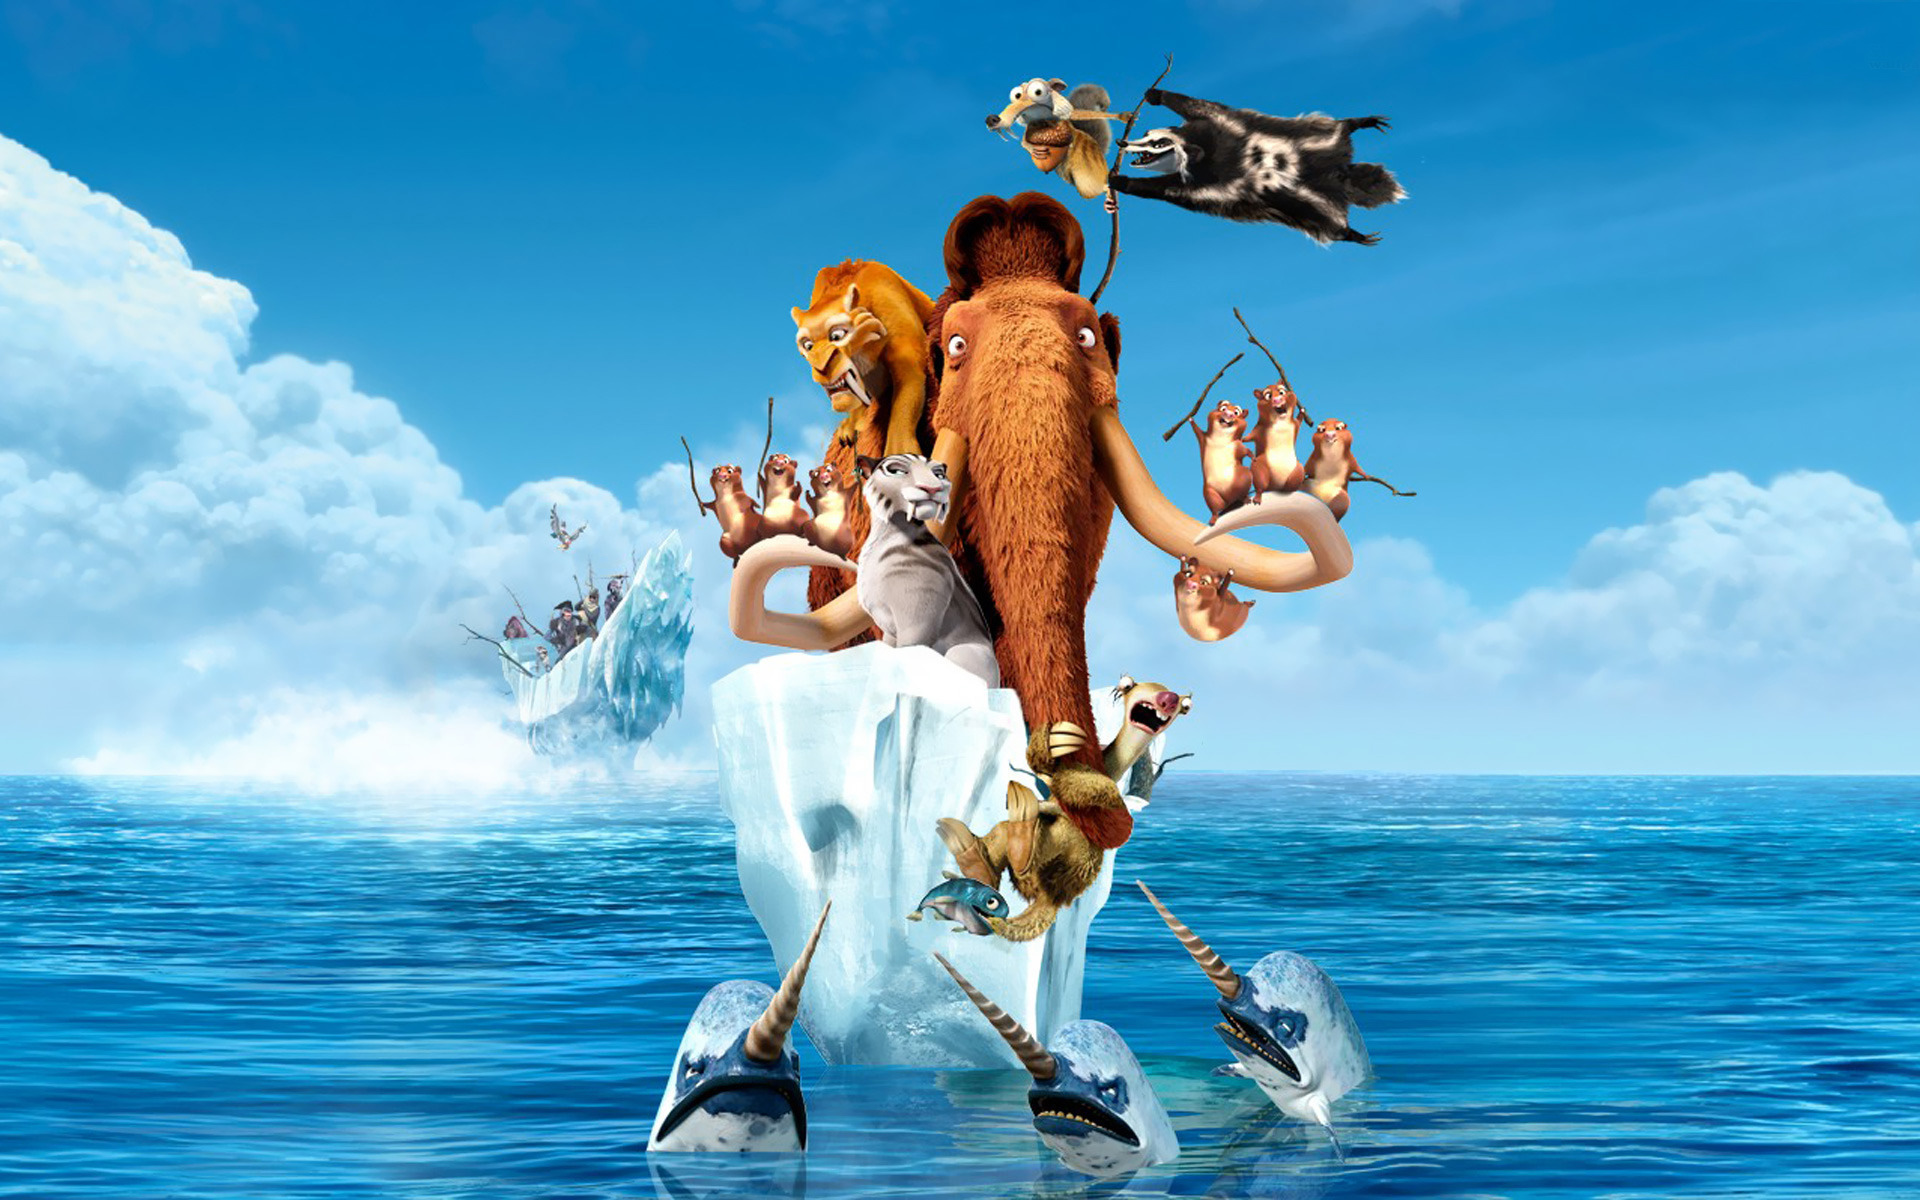 MOVIE REVIEWS: ICE AGE: CONTINENTAL DRIFT